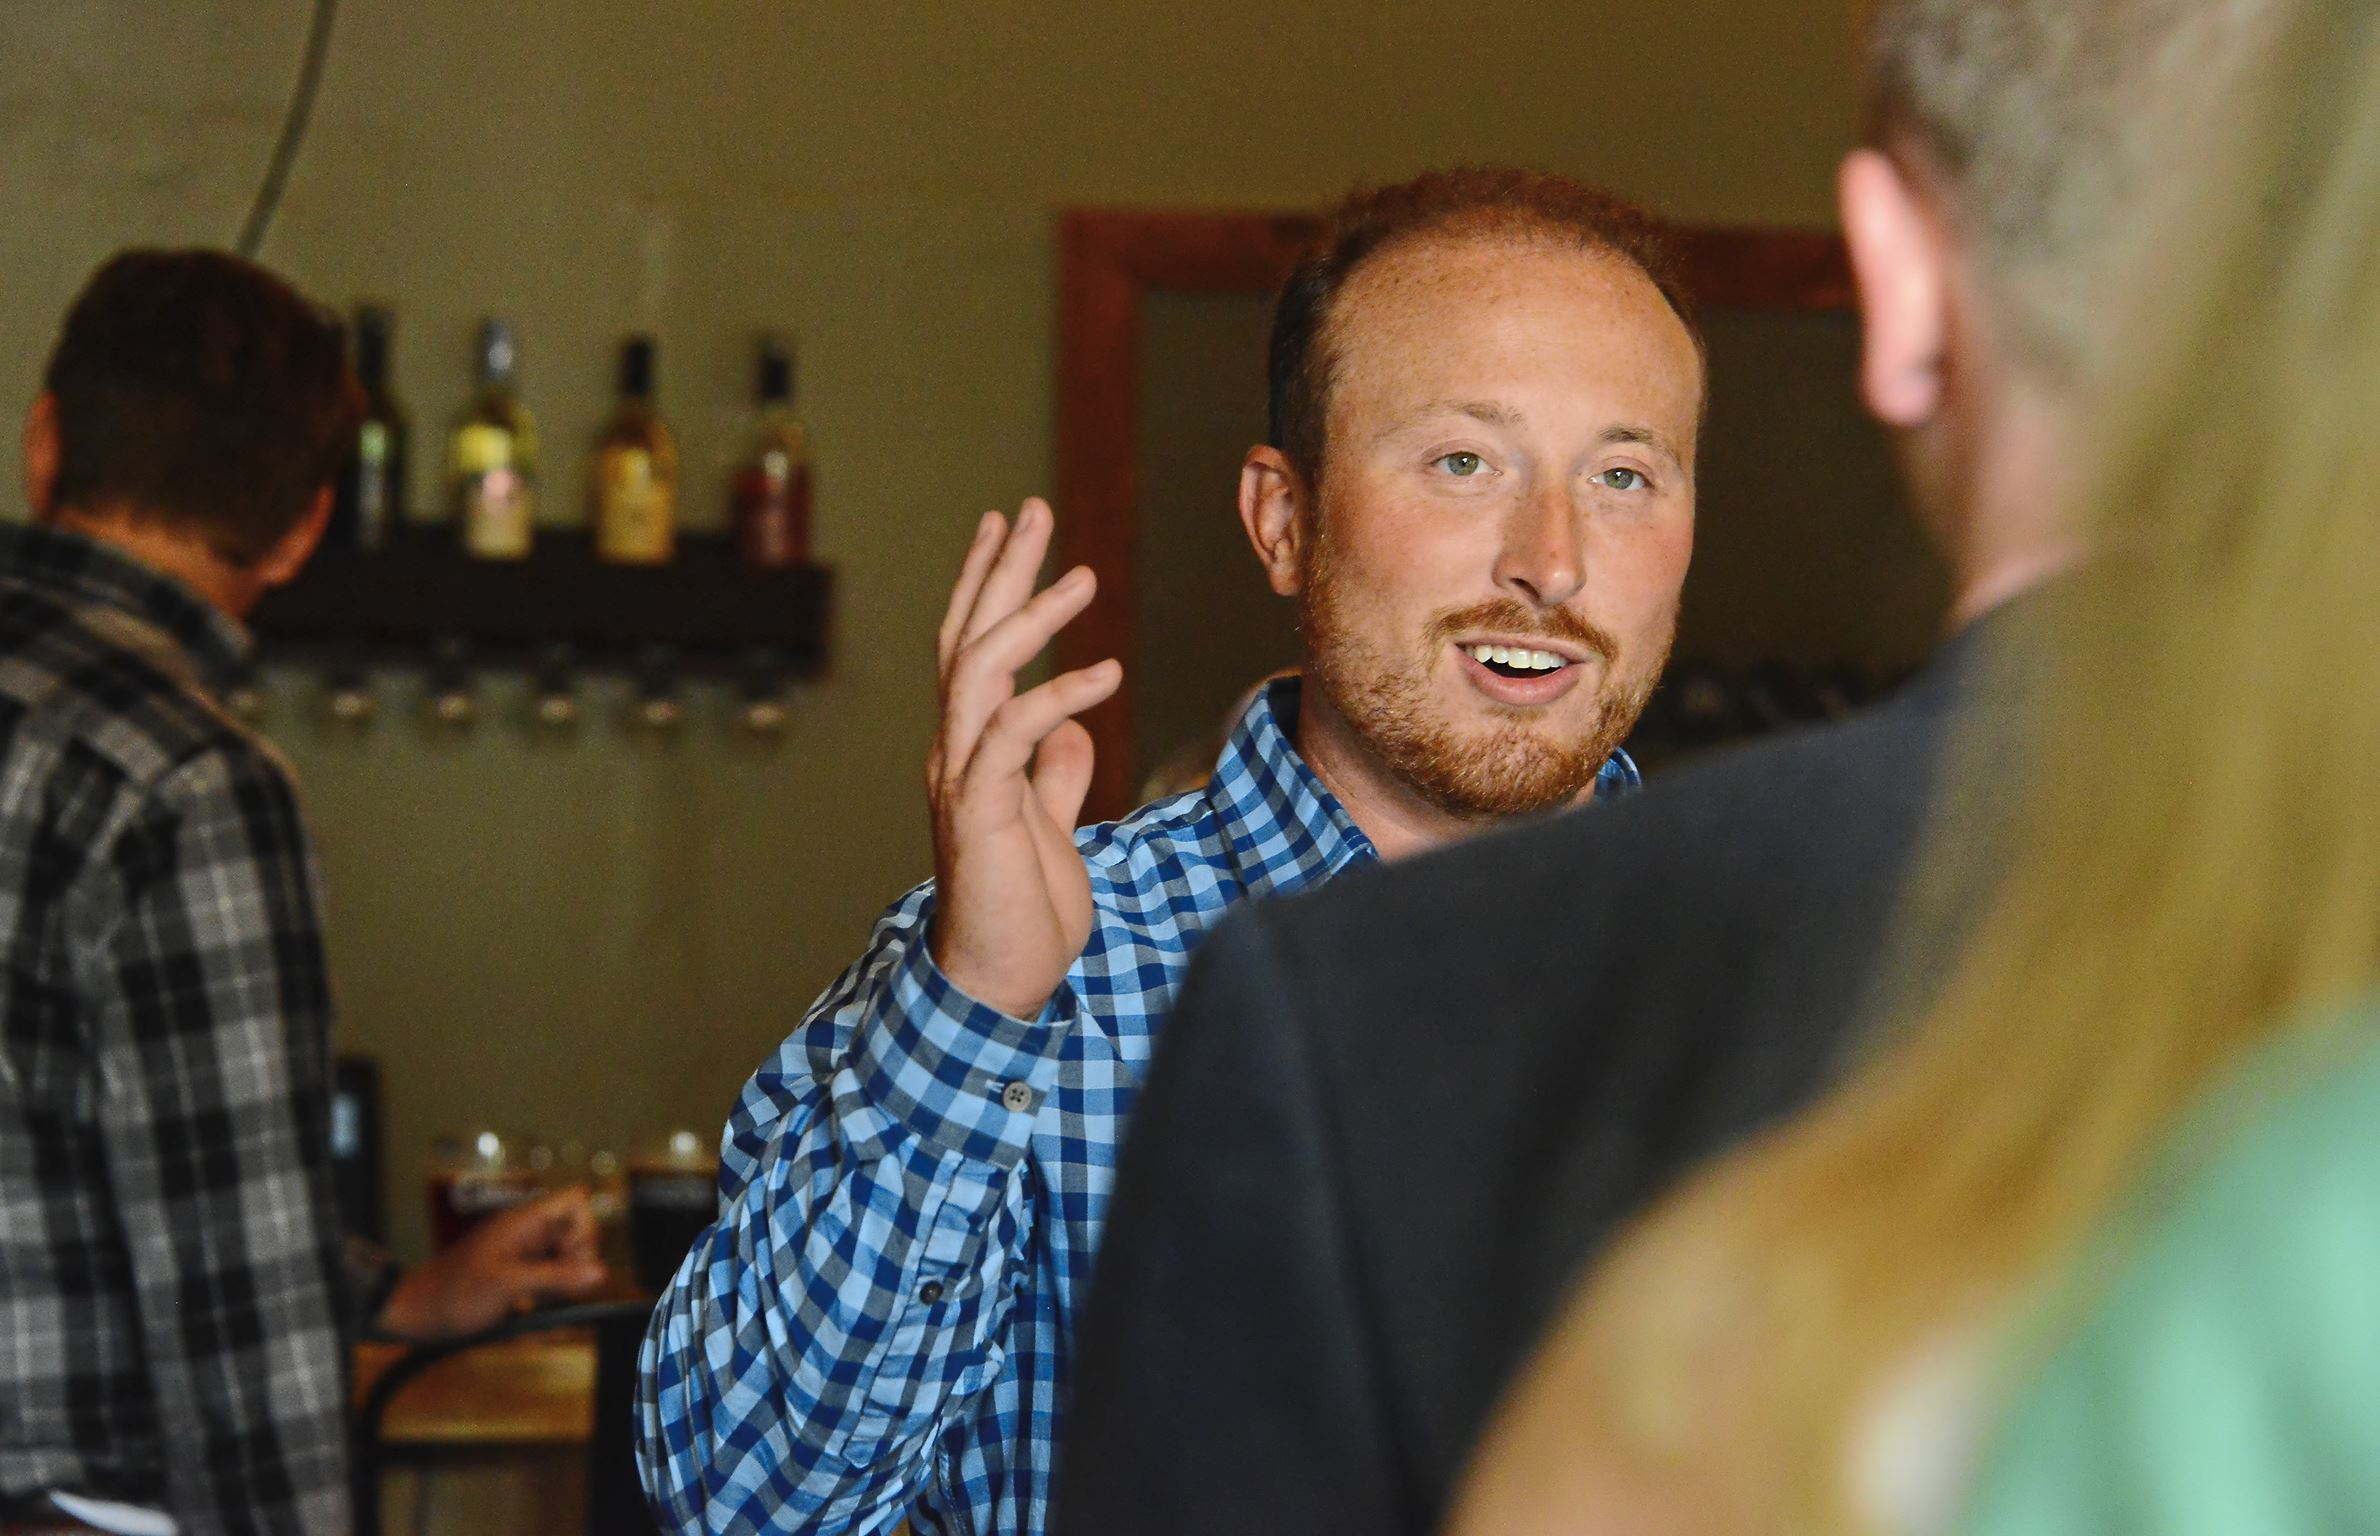 20170712lf-Job02-1 Zach Scott, right, greets Michael Krepsik and Ginger Randall in the Young Professionals in Energy gathering at Cobblehaus Brewing Company in Coraopolis. Zach Scott has been laid off from half a dozen oil and gas jobs. But he keeps coming back.